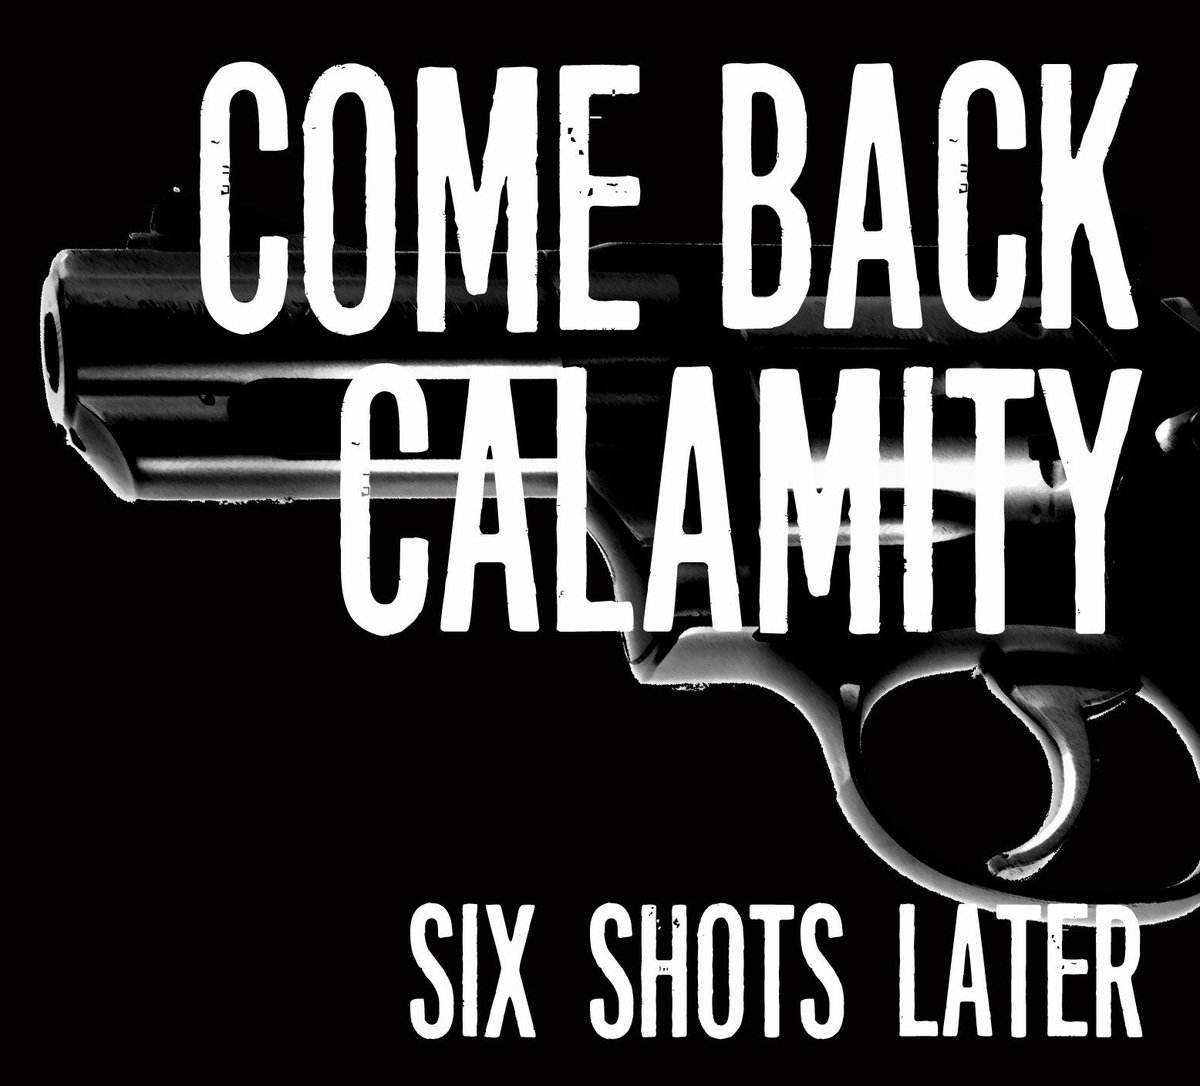 Come Back Calamity - Six Shots Later